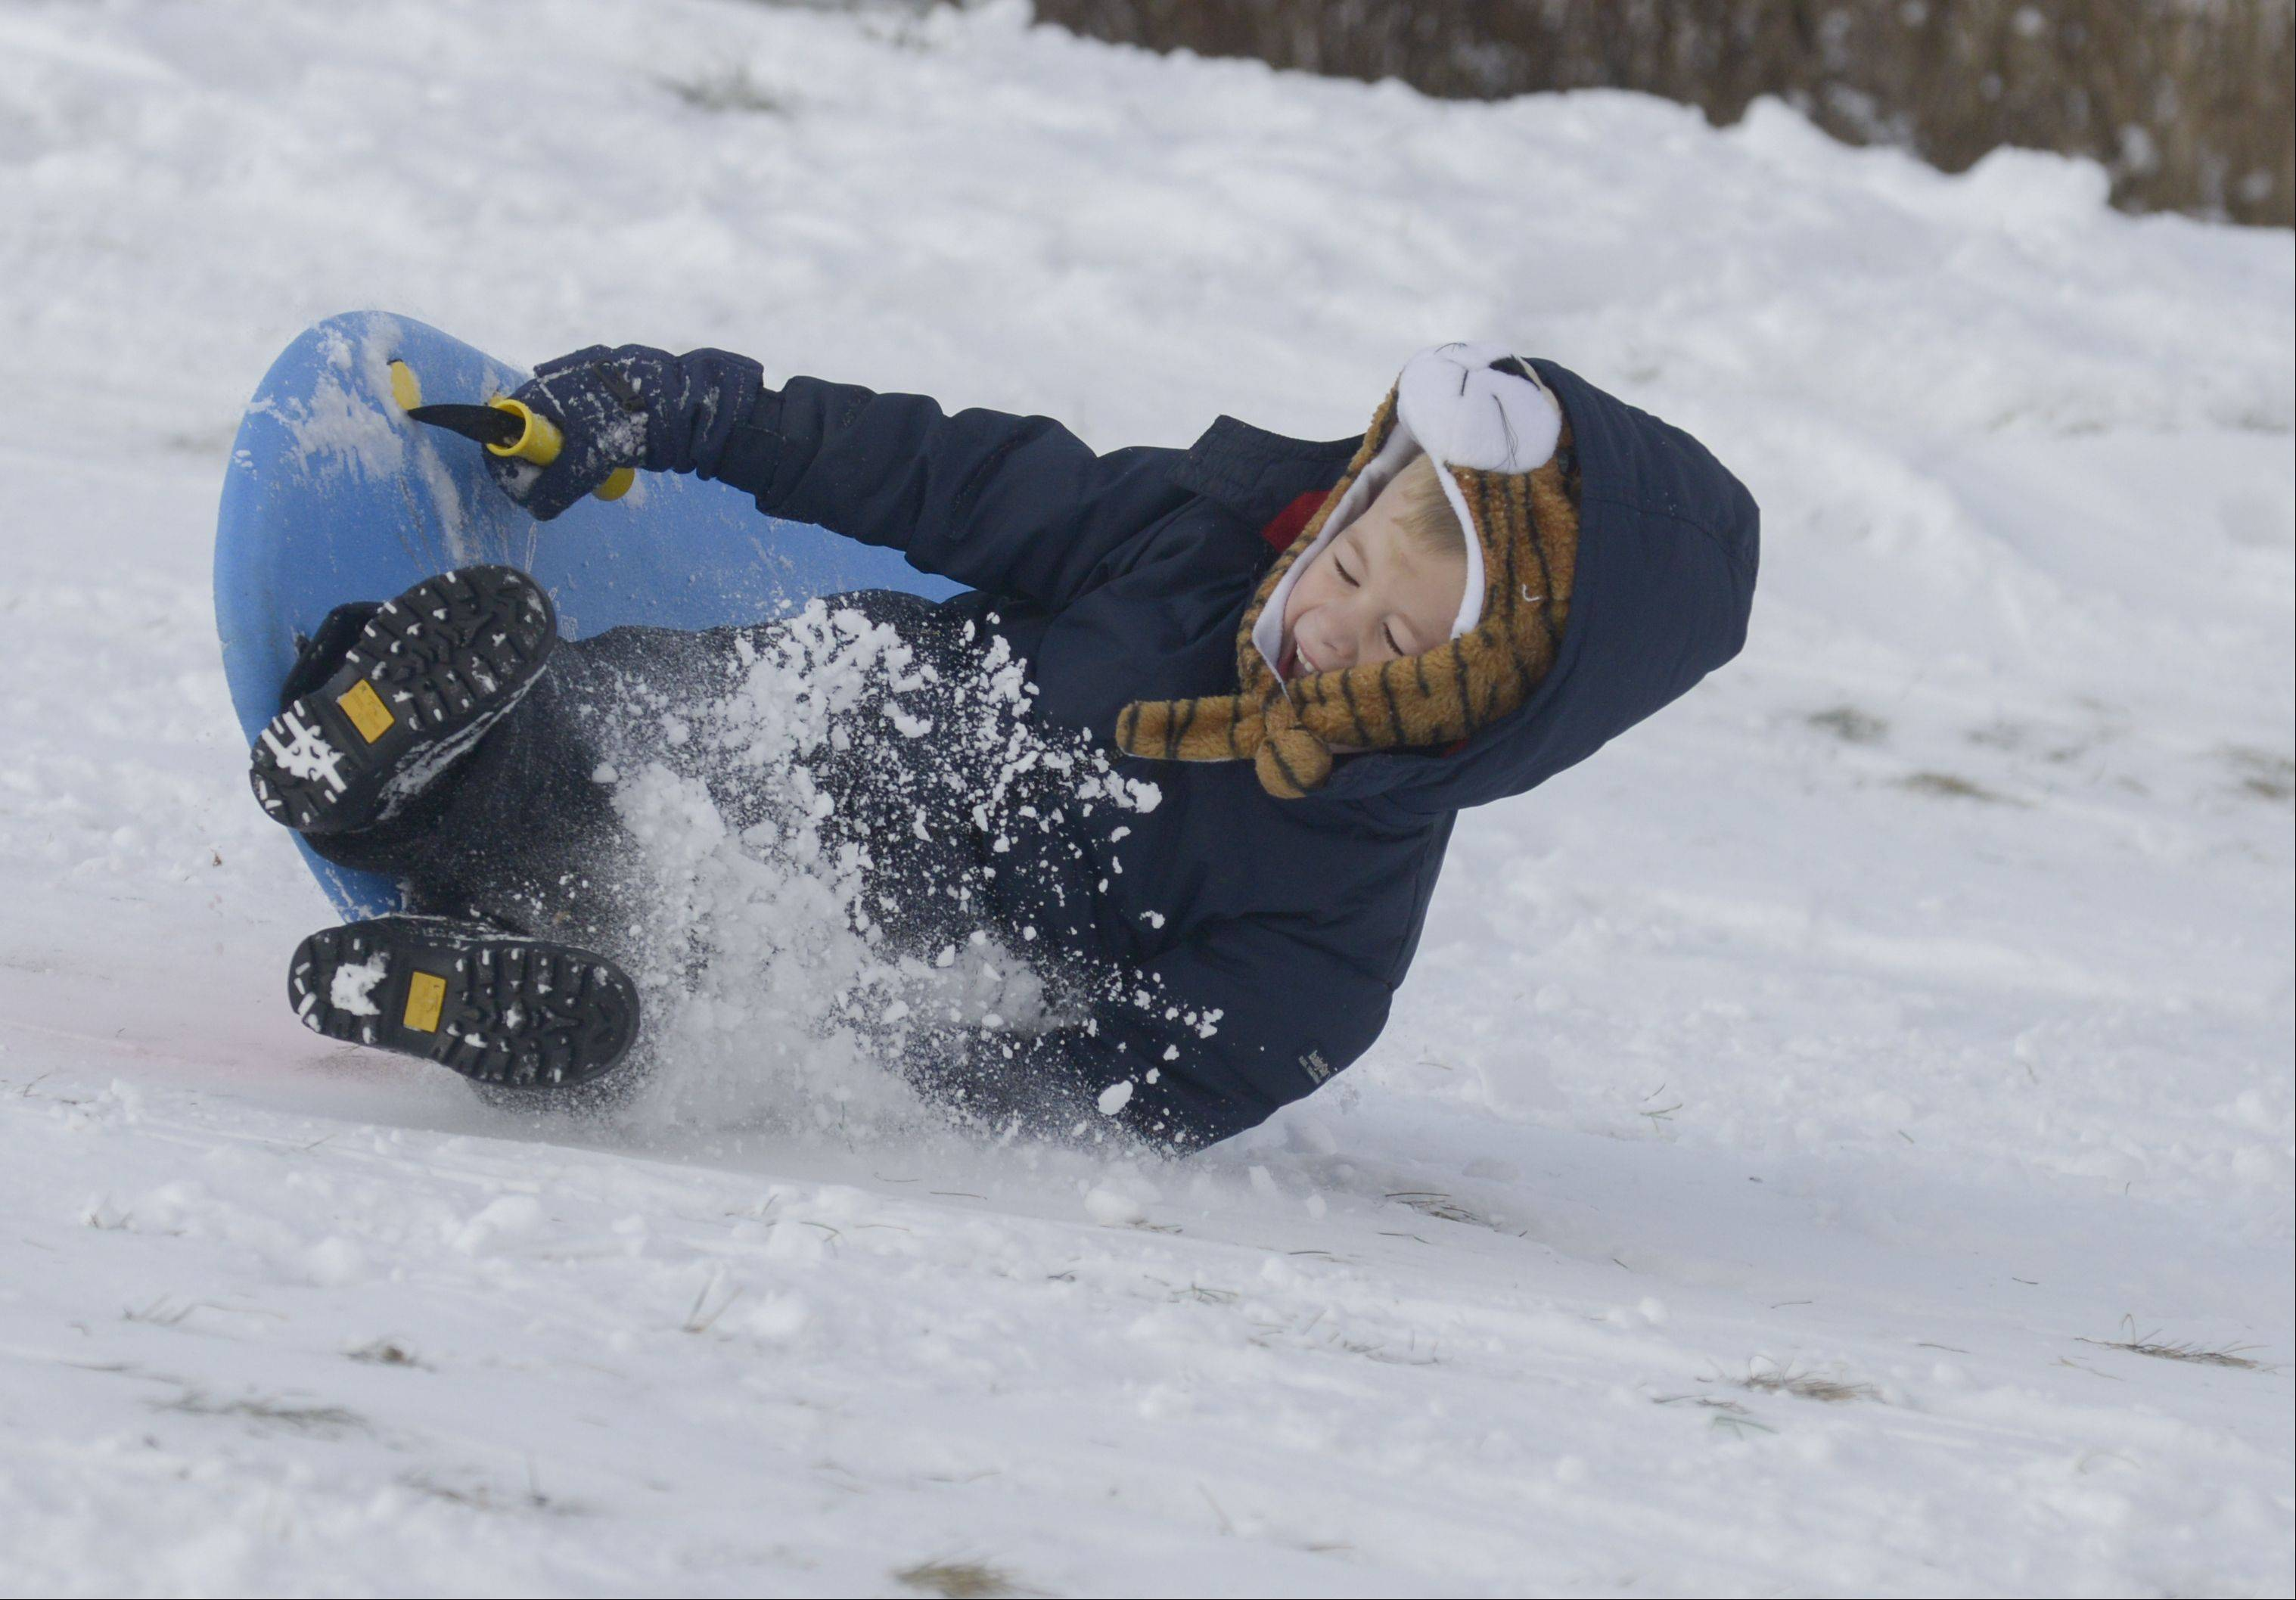 Neal Williams, 4, wipes out as he sleds down the hill at Wheaton's Northside Park. He and his siblings are home schooled so they are able to be flexible and take advantage of the fresh snow for some fun.